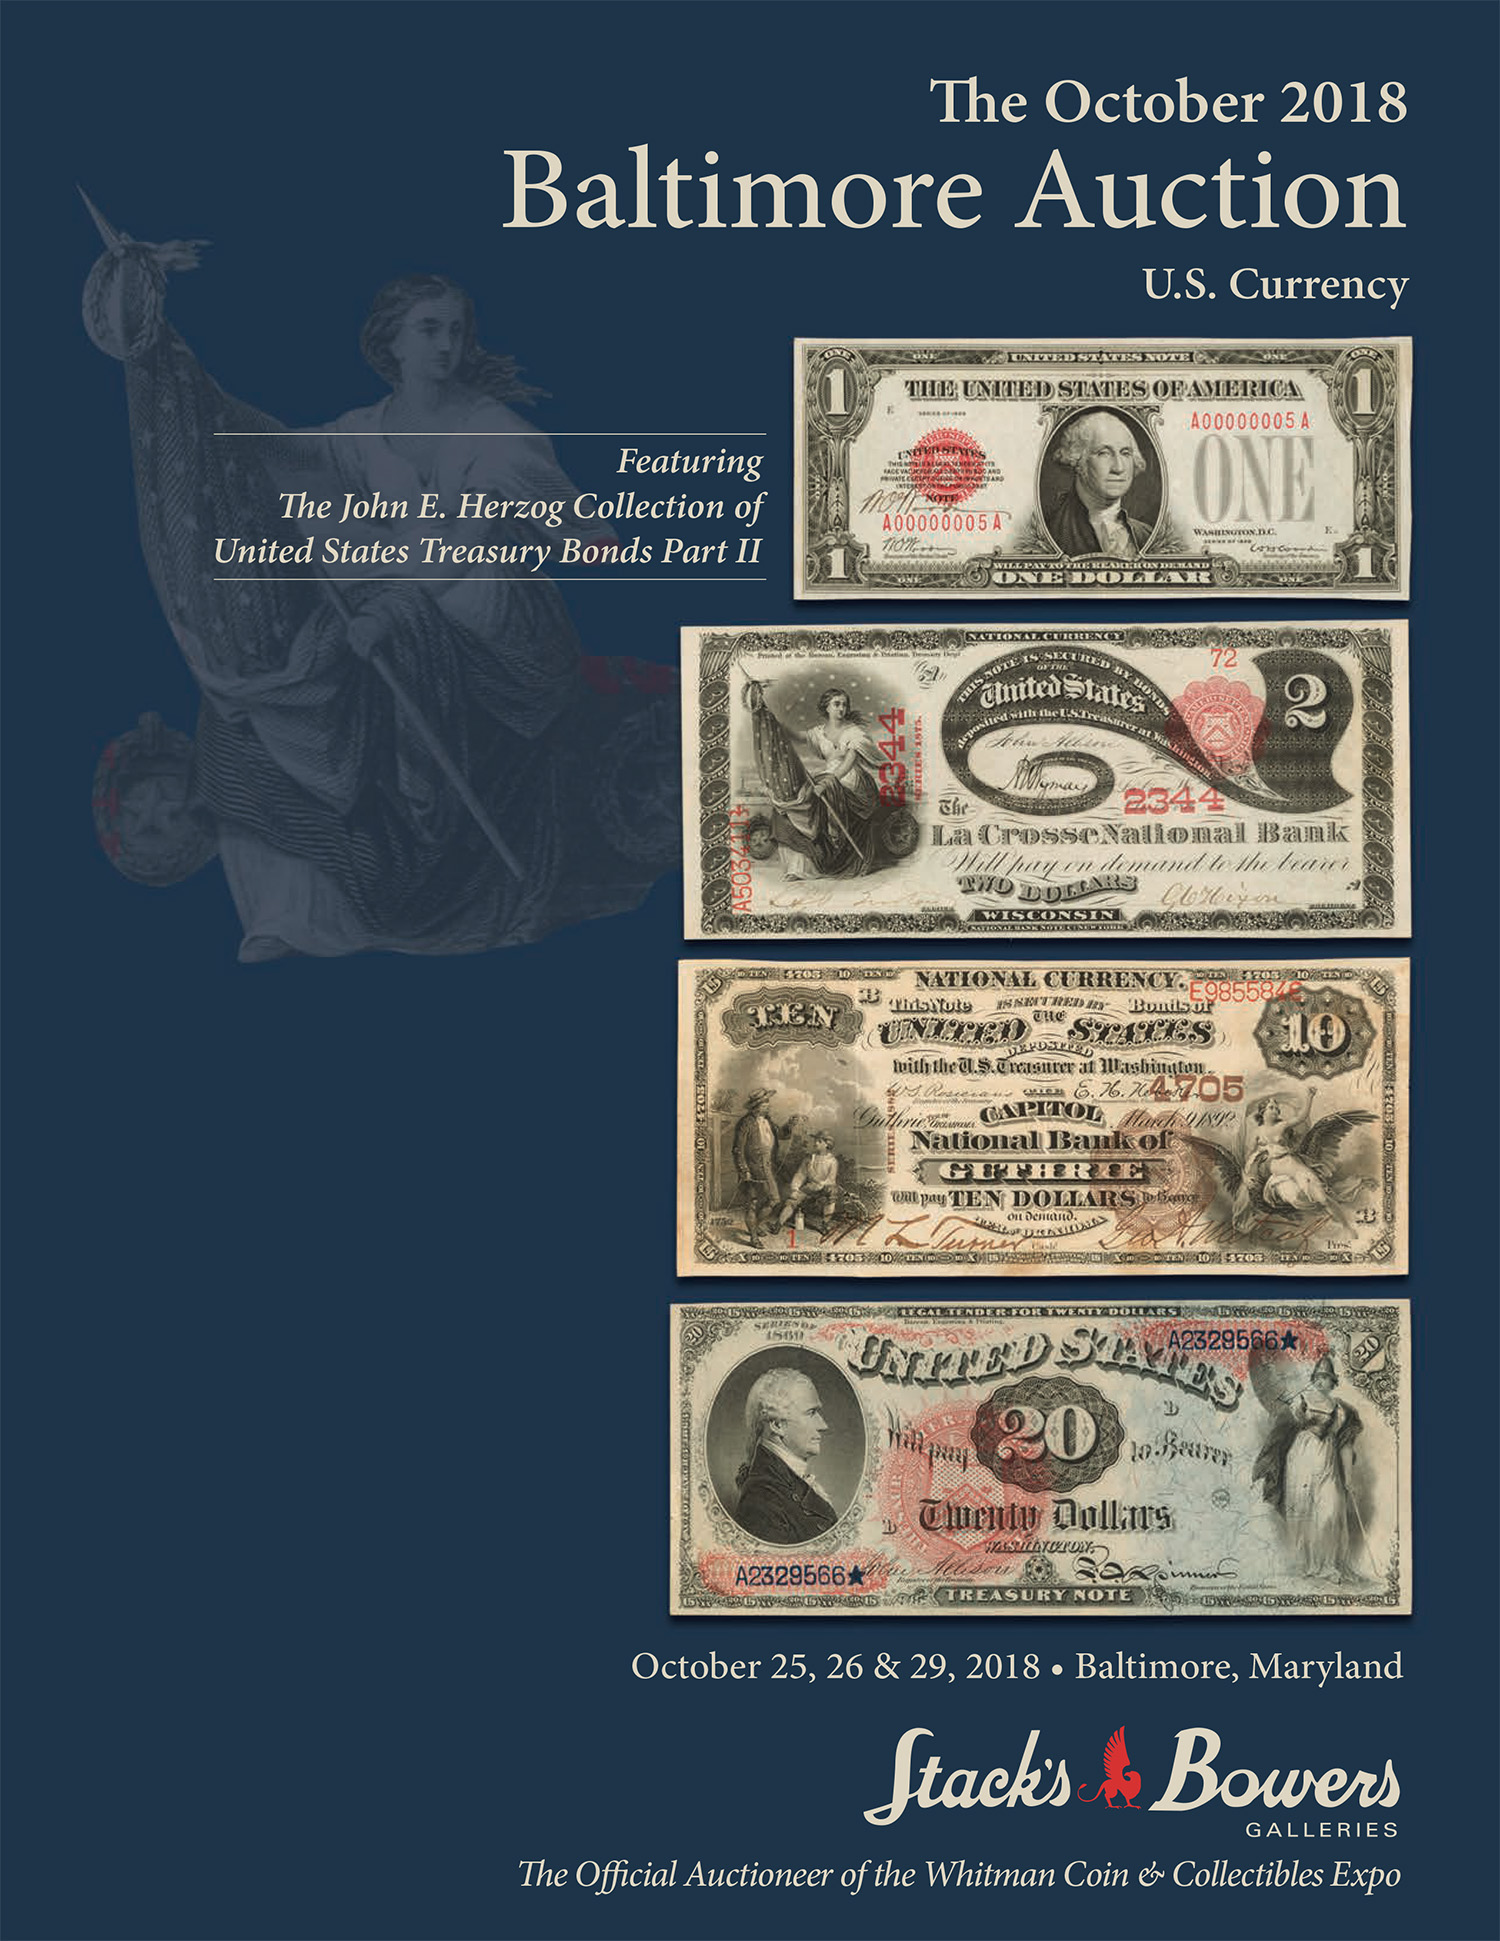 The October 2018 Baltimore Auction of U.S. Currency Featuring the John E. Herzog Collection of United States Treasury Bonds Part II